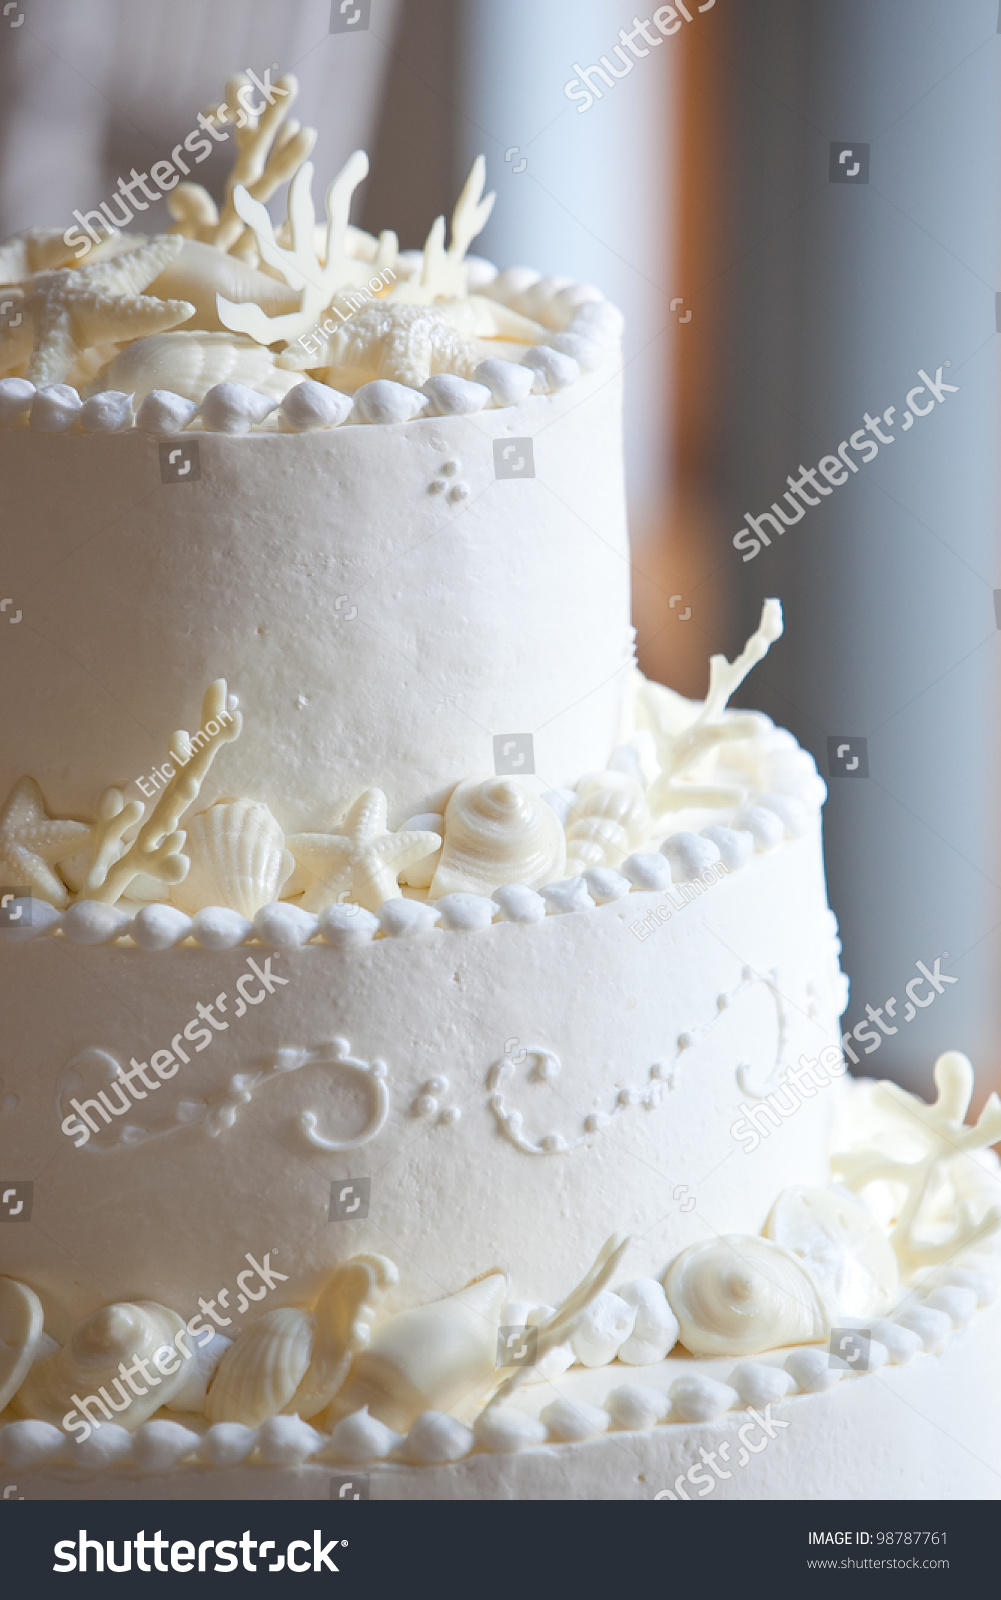 White Ocean Themed Wedding Cake Miniature Stock Photo (Royalty Free ...